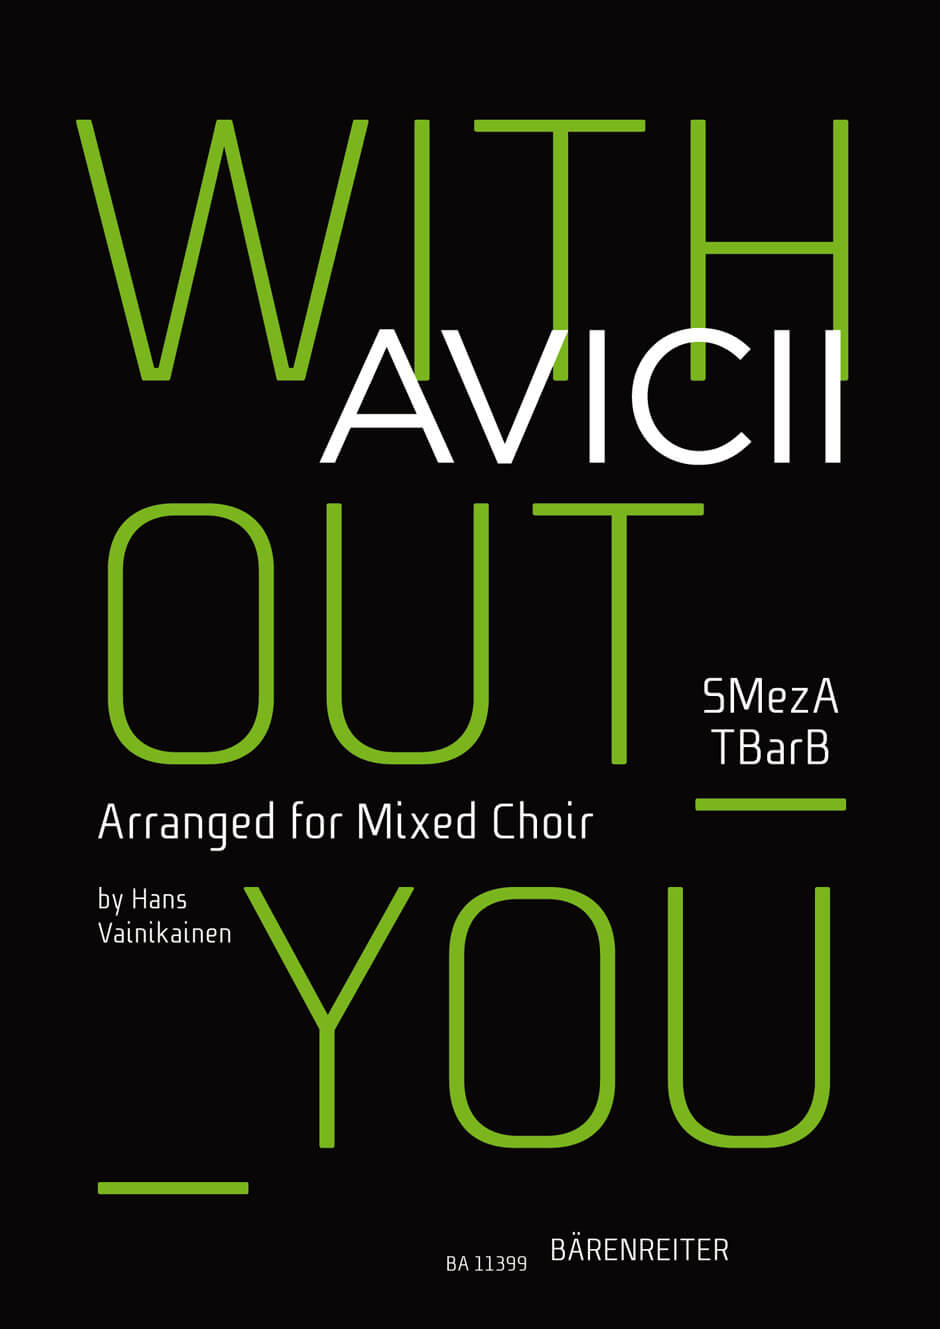 Without you. For Mixed Choir. Avicii